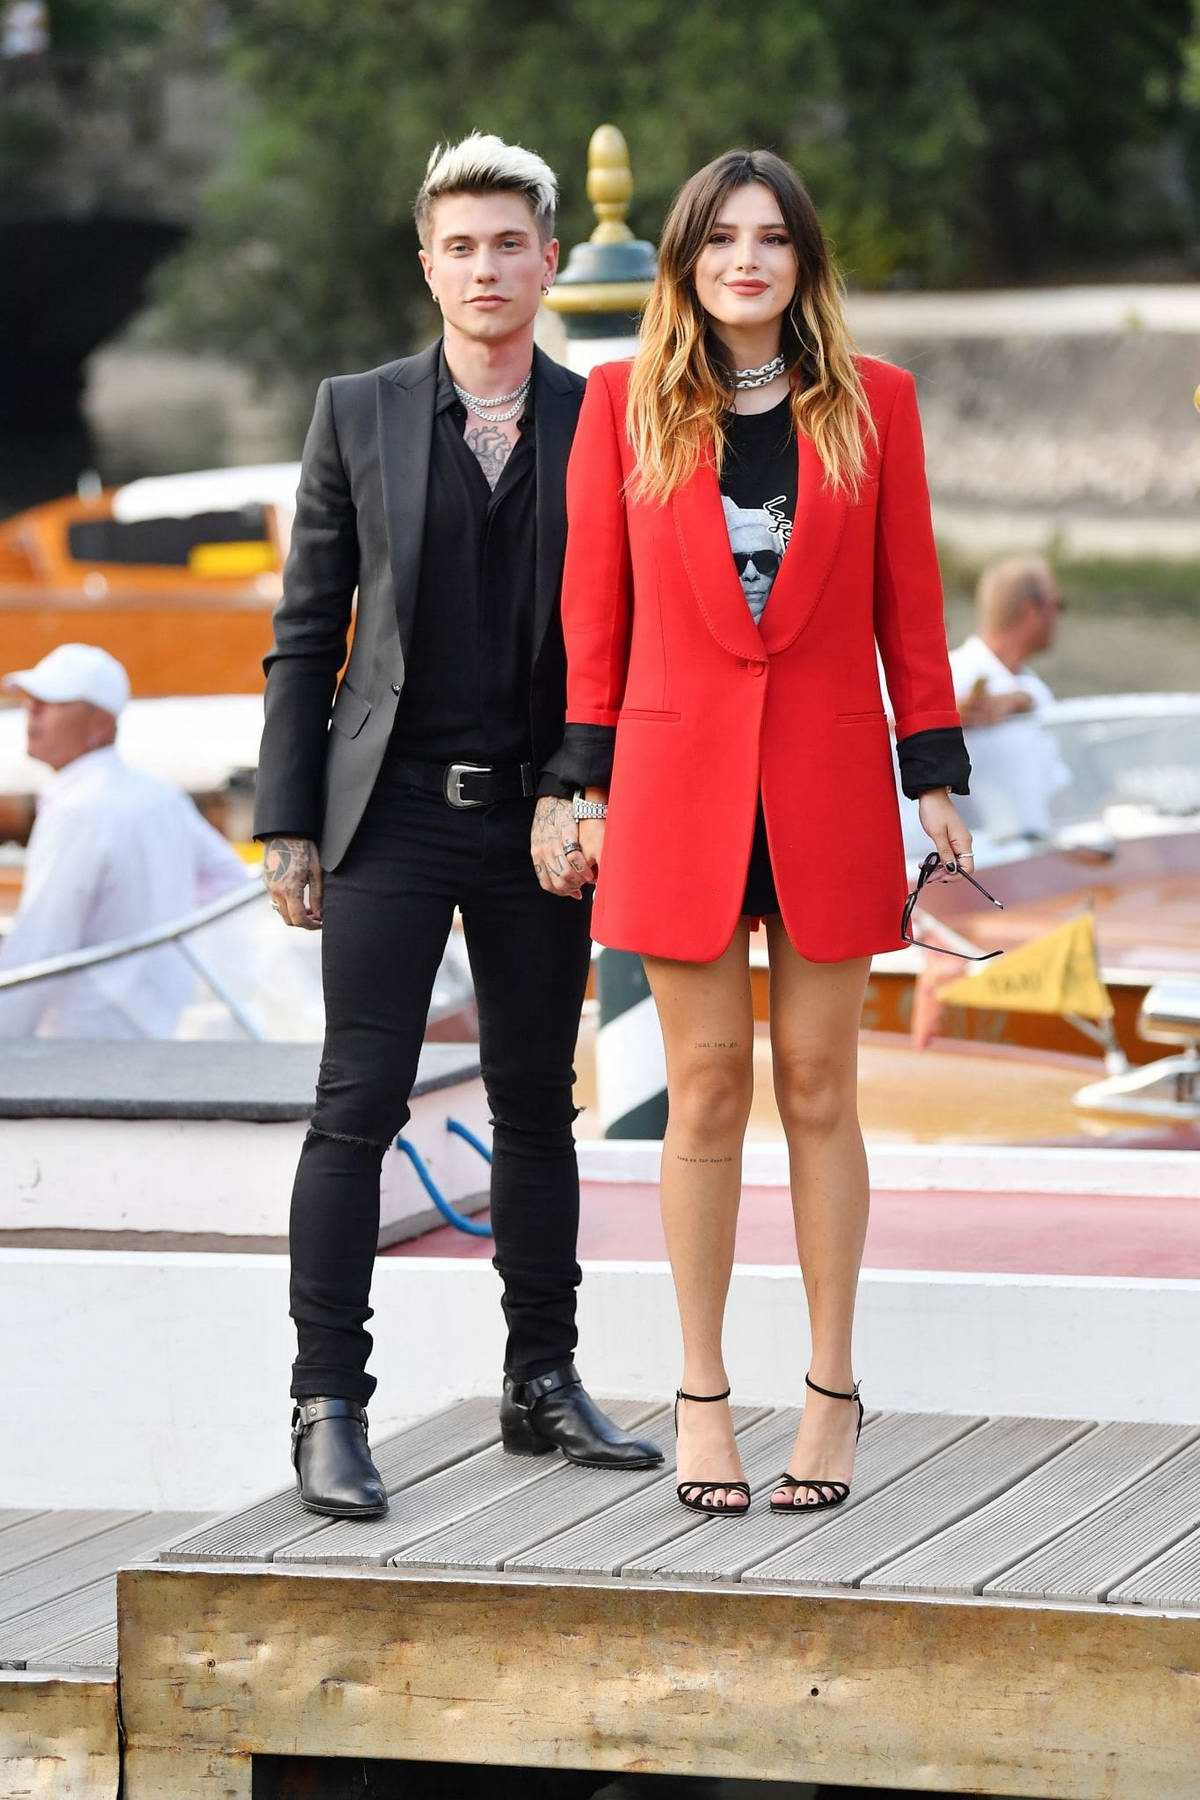 Bella Thorne and Benjamin Mascolo pose for photos during the 76th Venice Film Festival in Venice, Italy